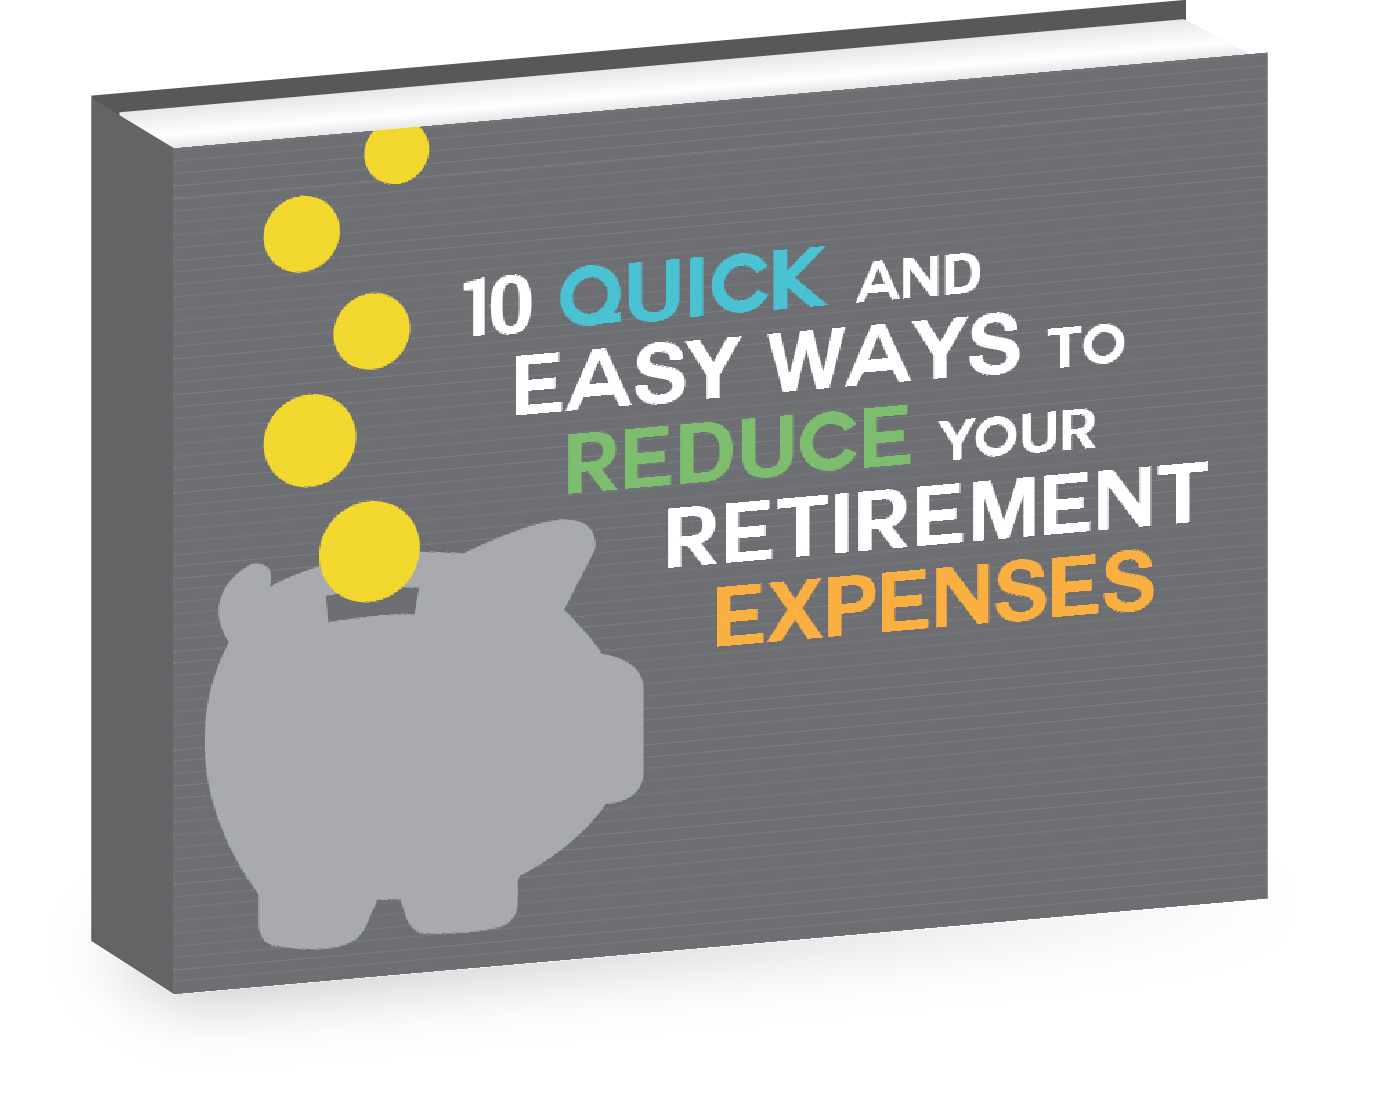 Book_10_quick_and_easy_ways_to_reduce_expenses.png